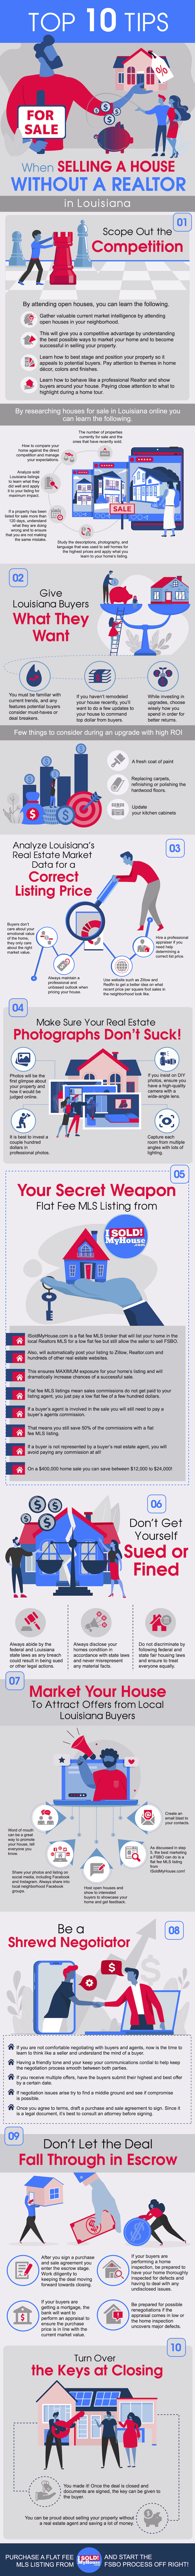 infographic of the 10 steps to sell a house in louisiana without an agent